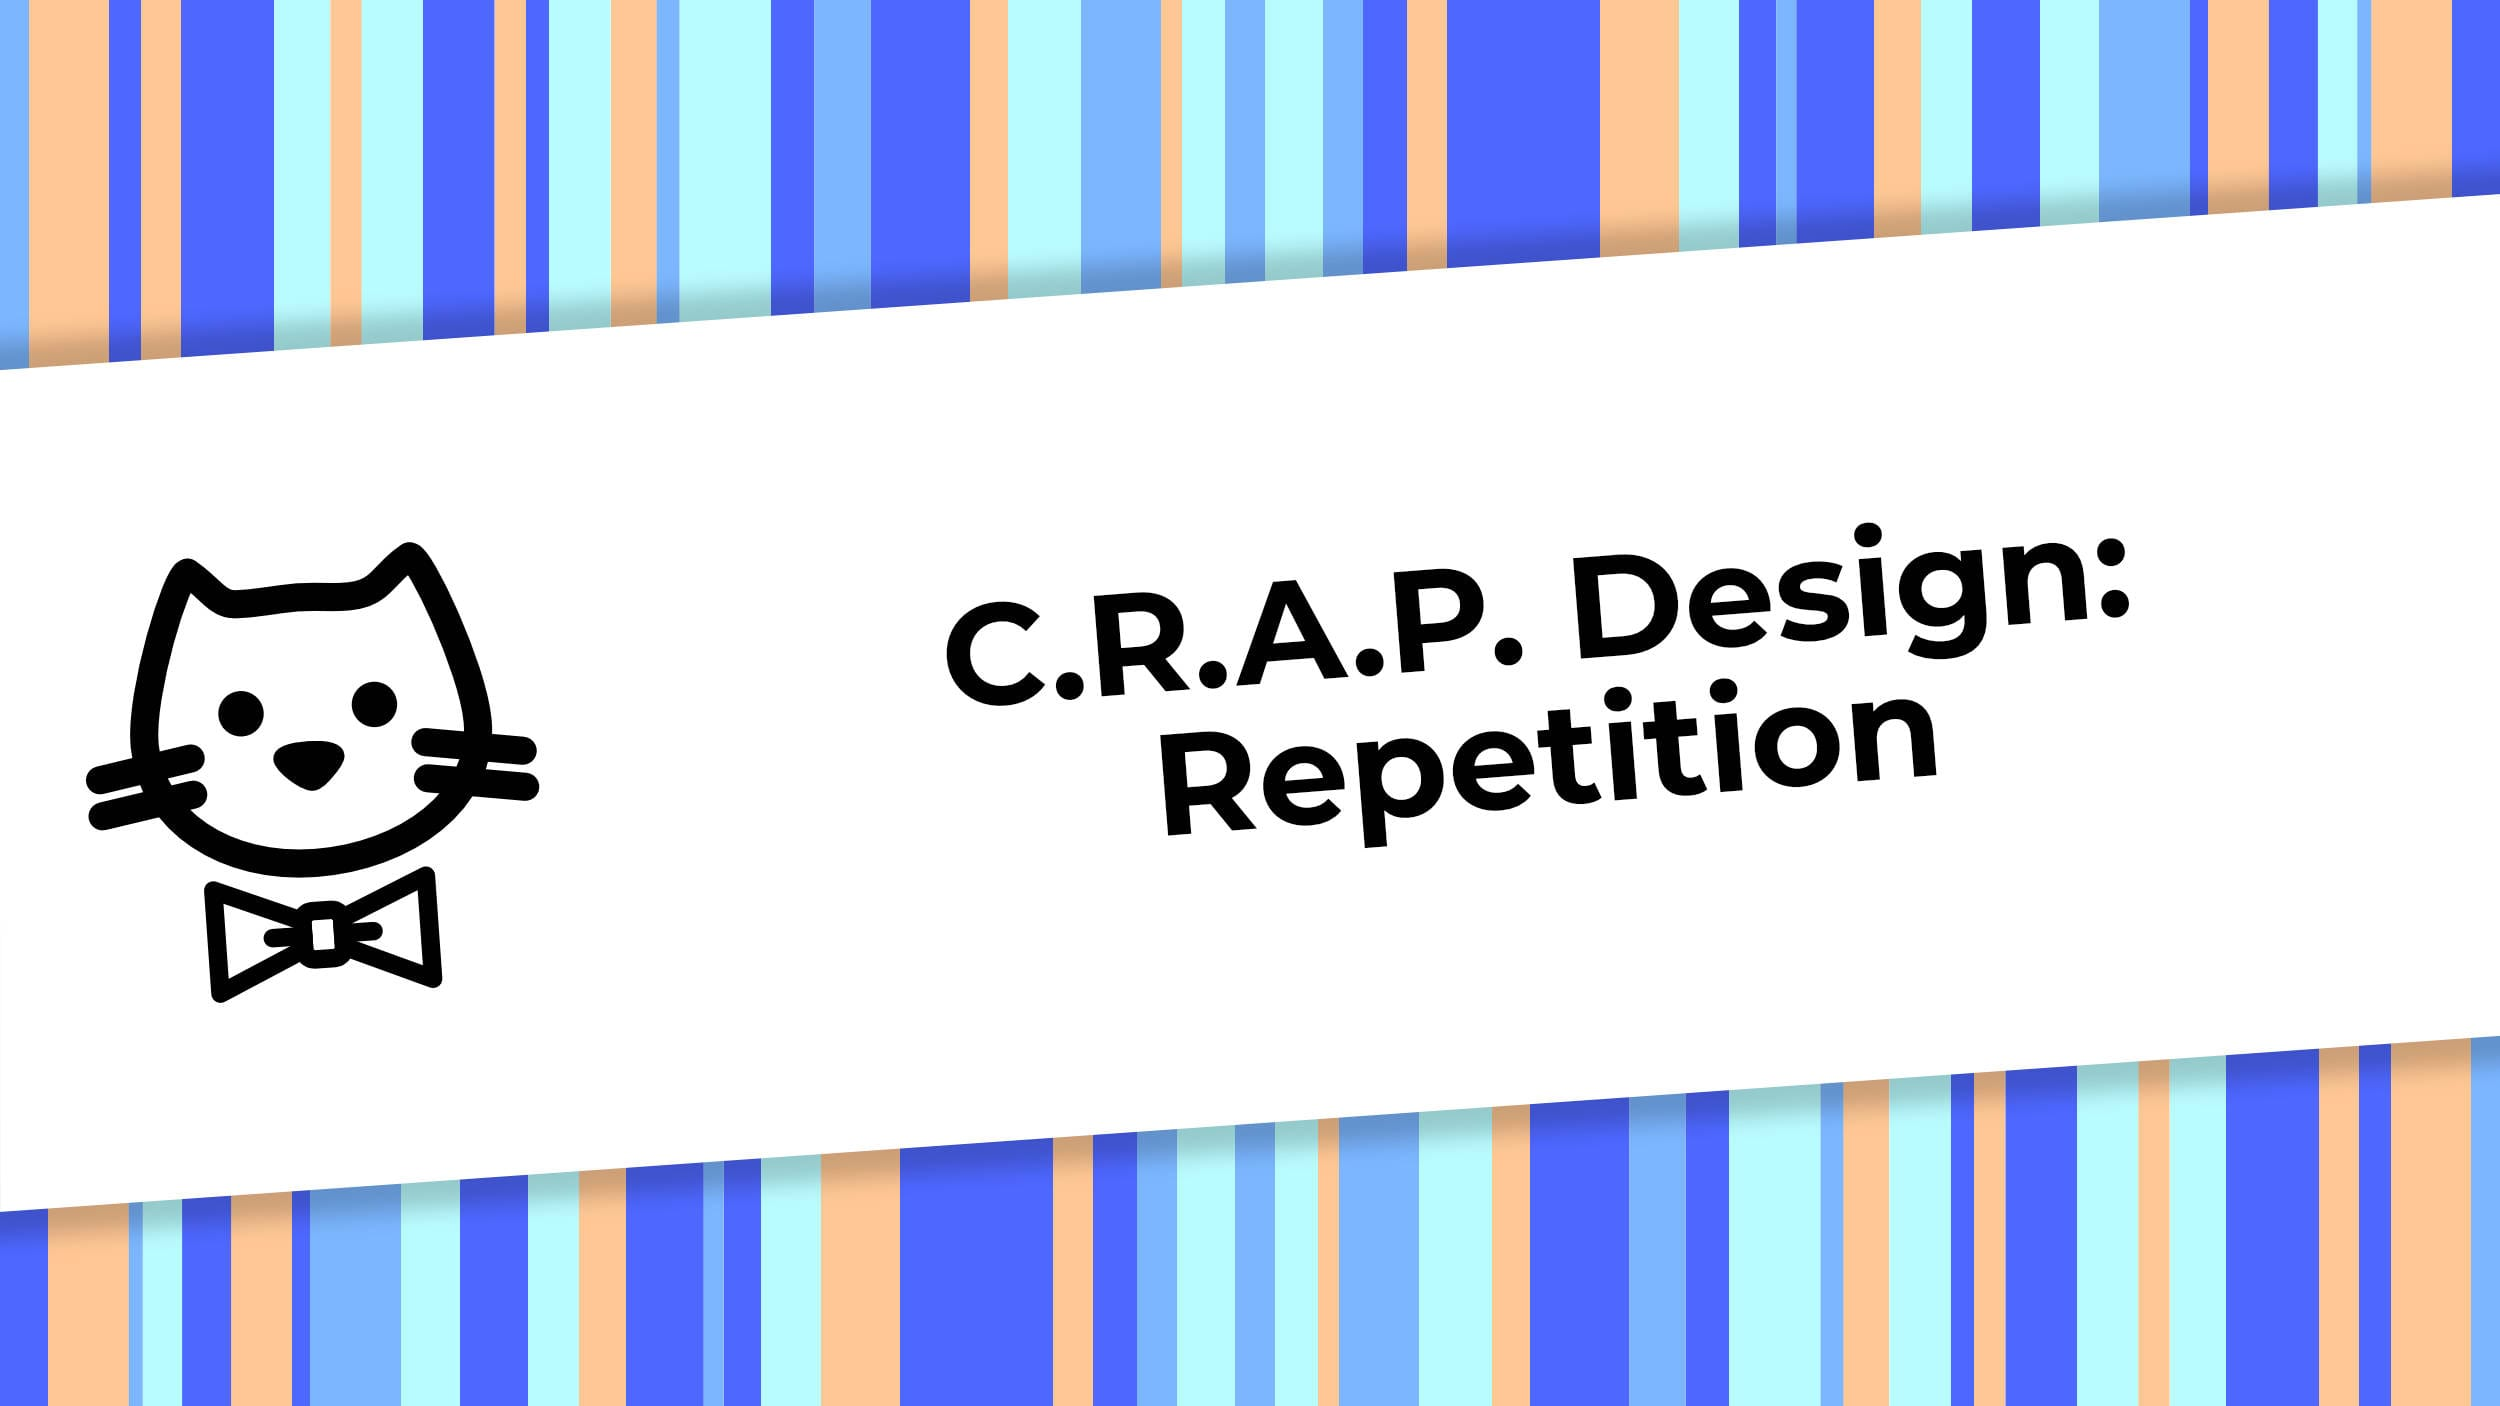 CRAP Design - Repetition.jpg